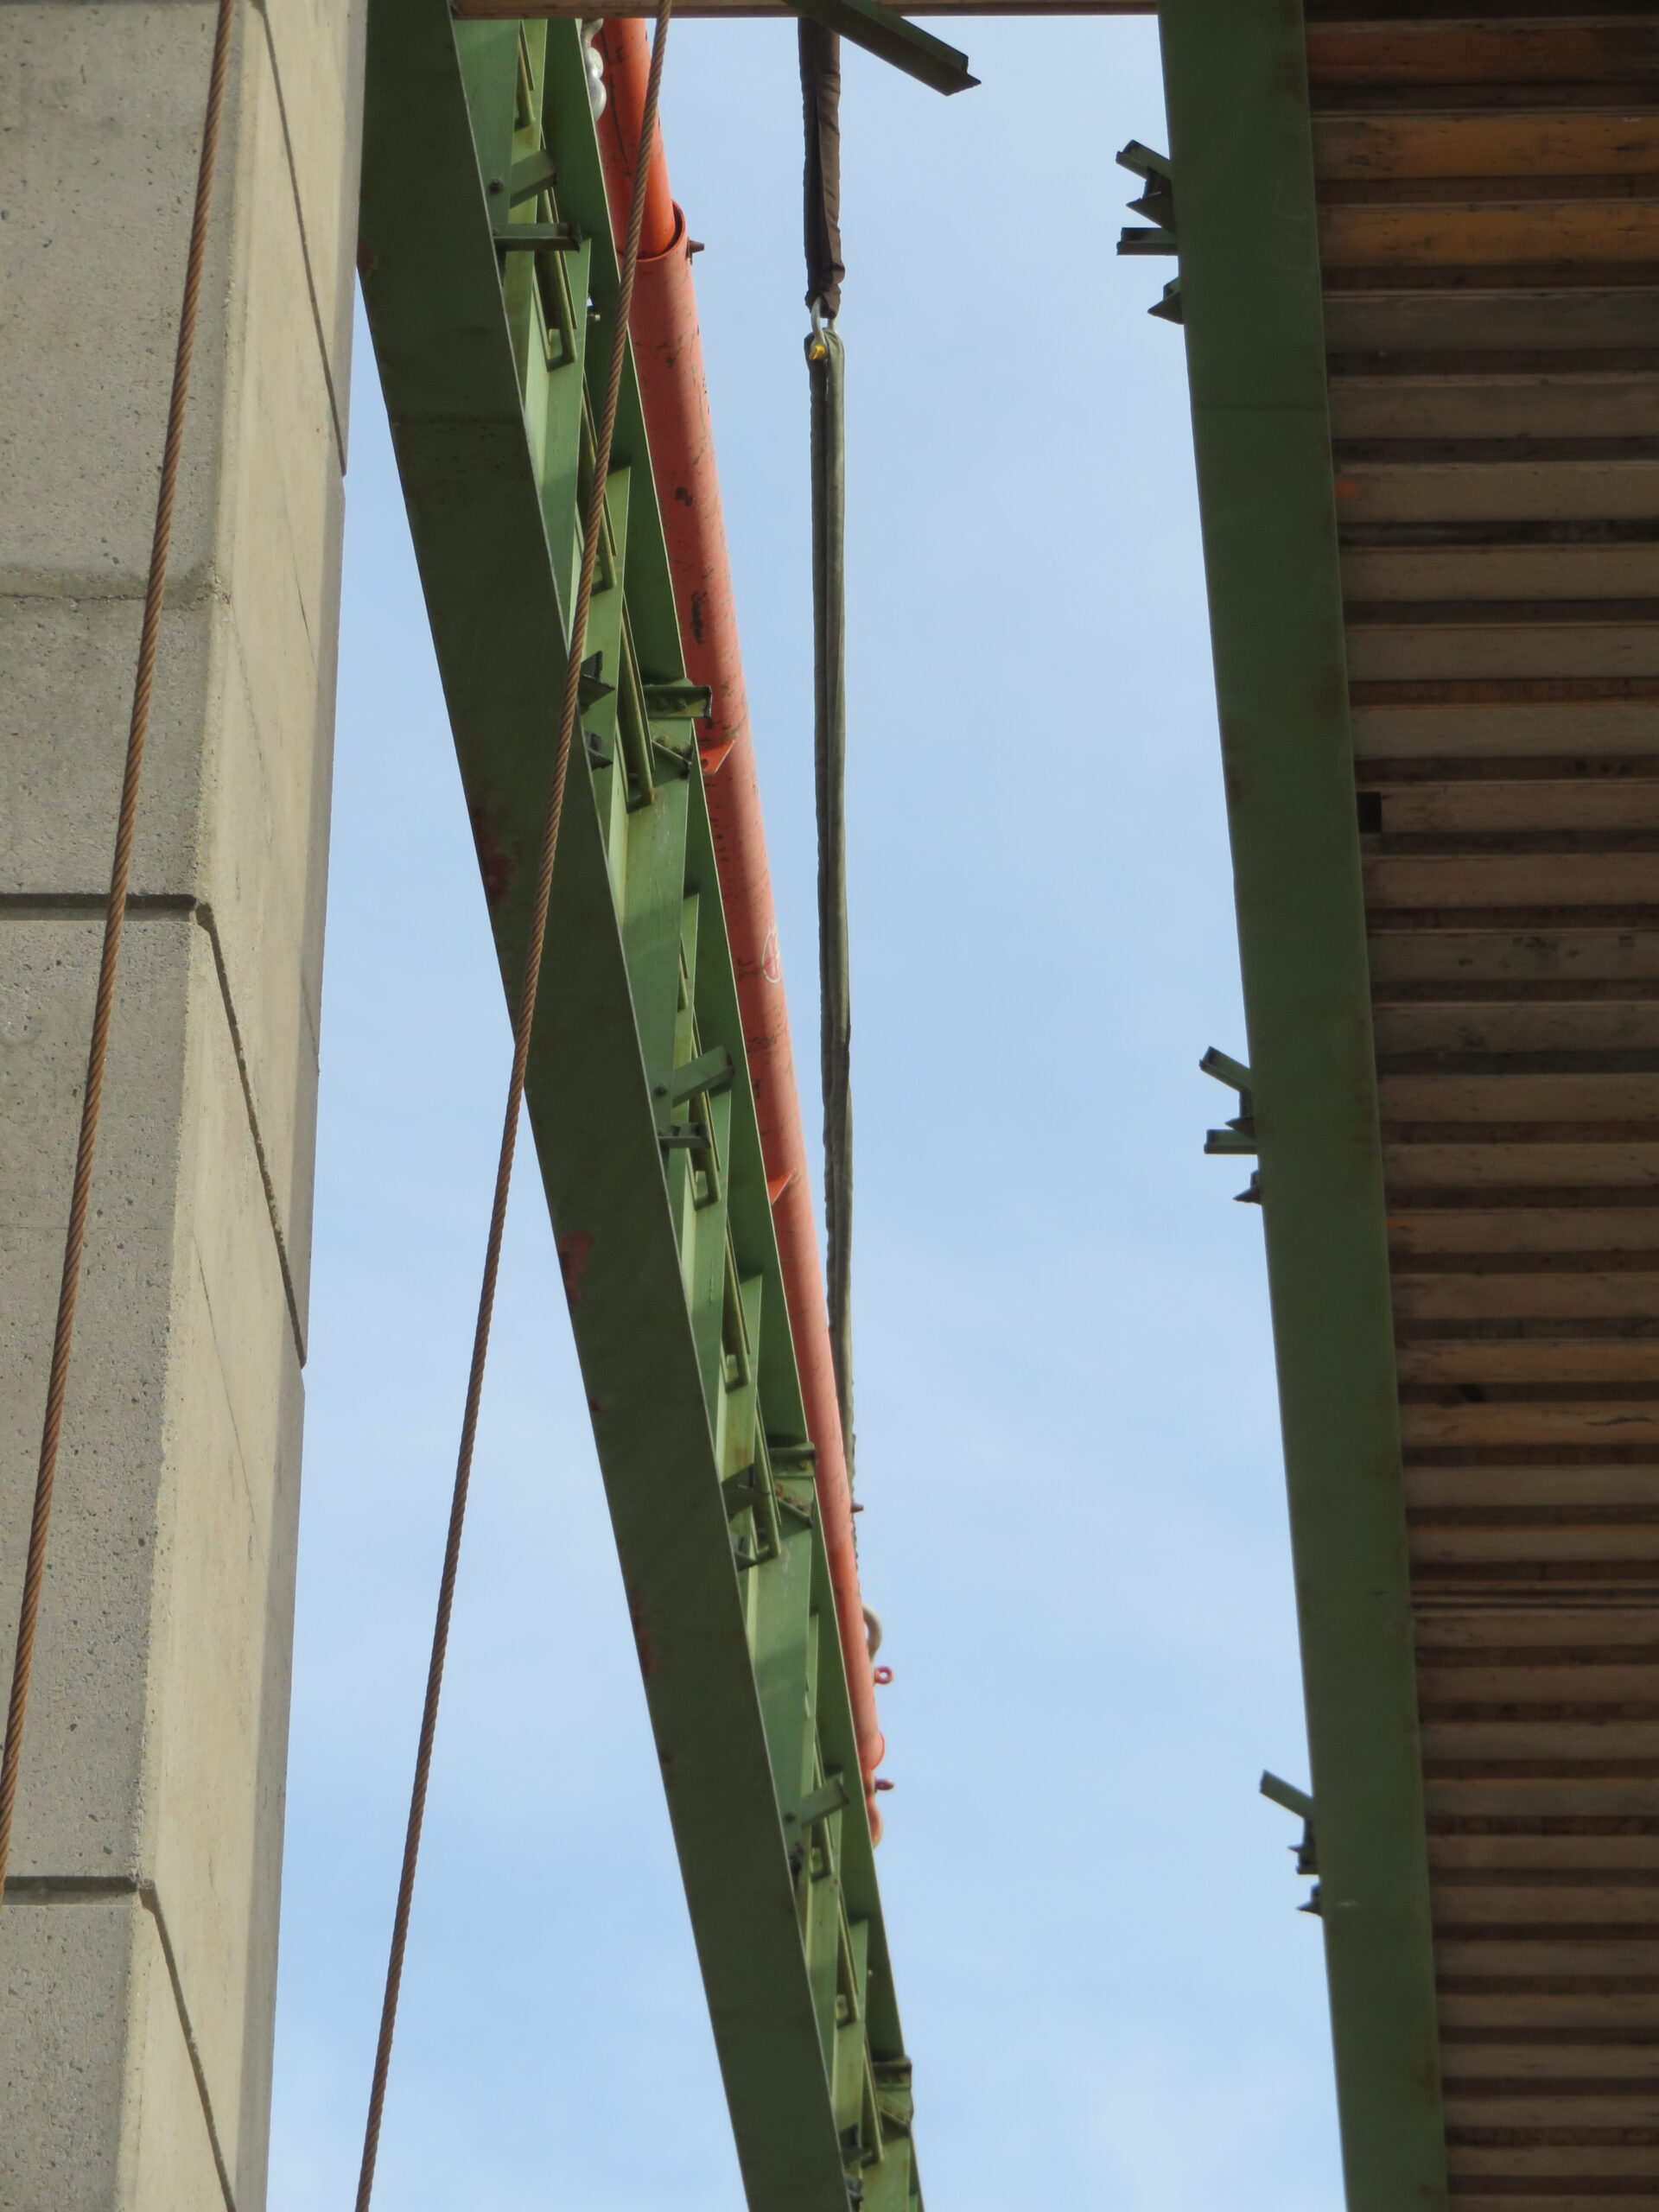 View between the girders of the spreader bar hooked up to the girder